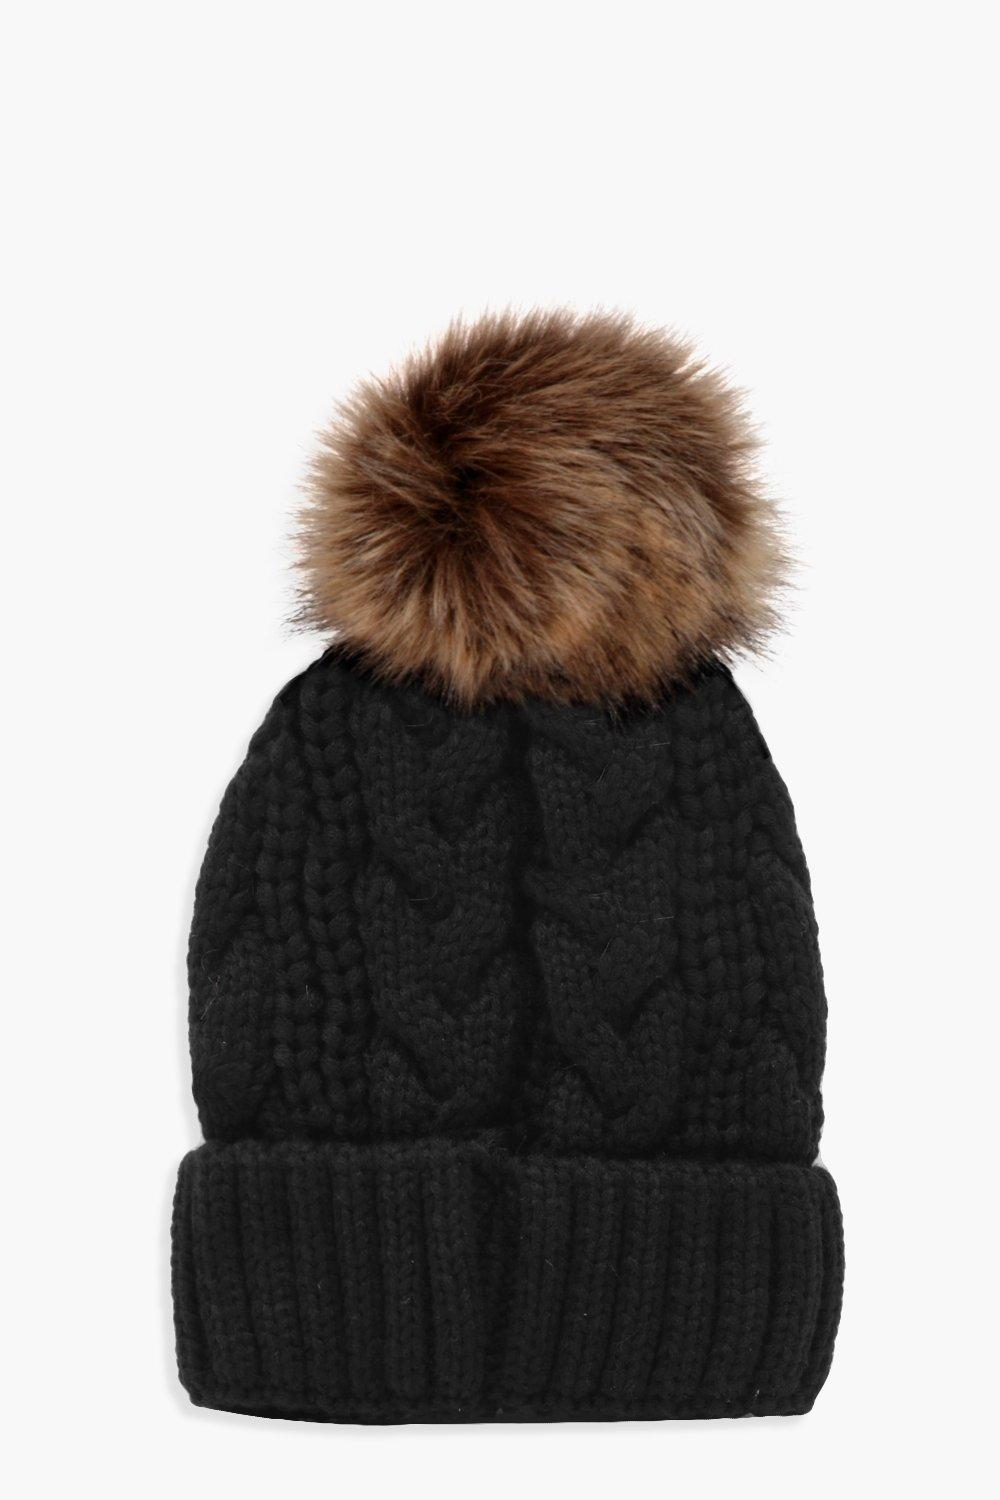 Cable Knit Faux Fur Pom Beanie. Hover to zoom 4807e57fb0f